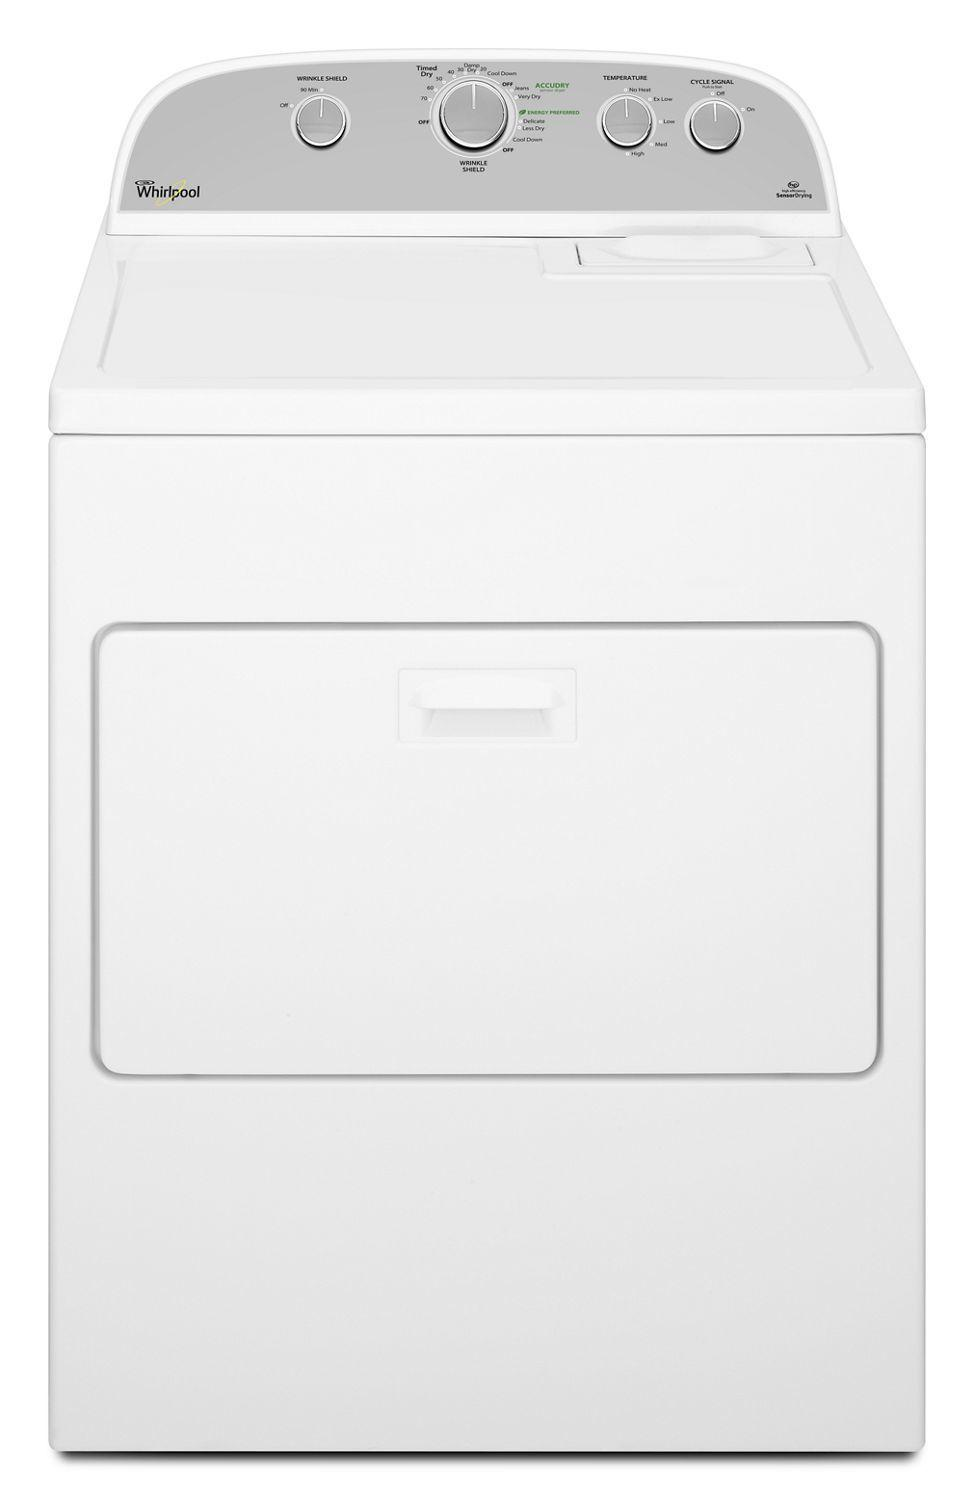 Whirlpool7.0 Cu.Ft Top Load Electric Dryer With Wrinkle Shield™ Plus White